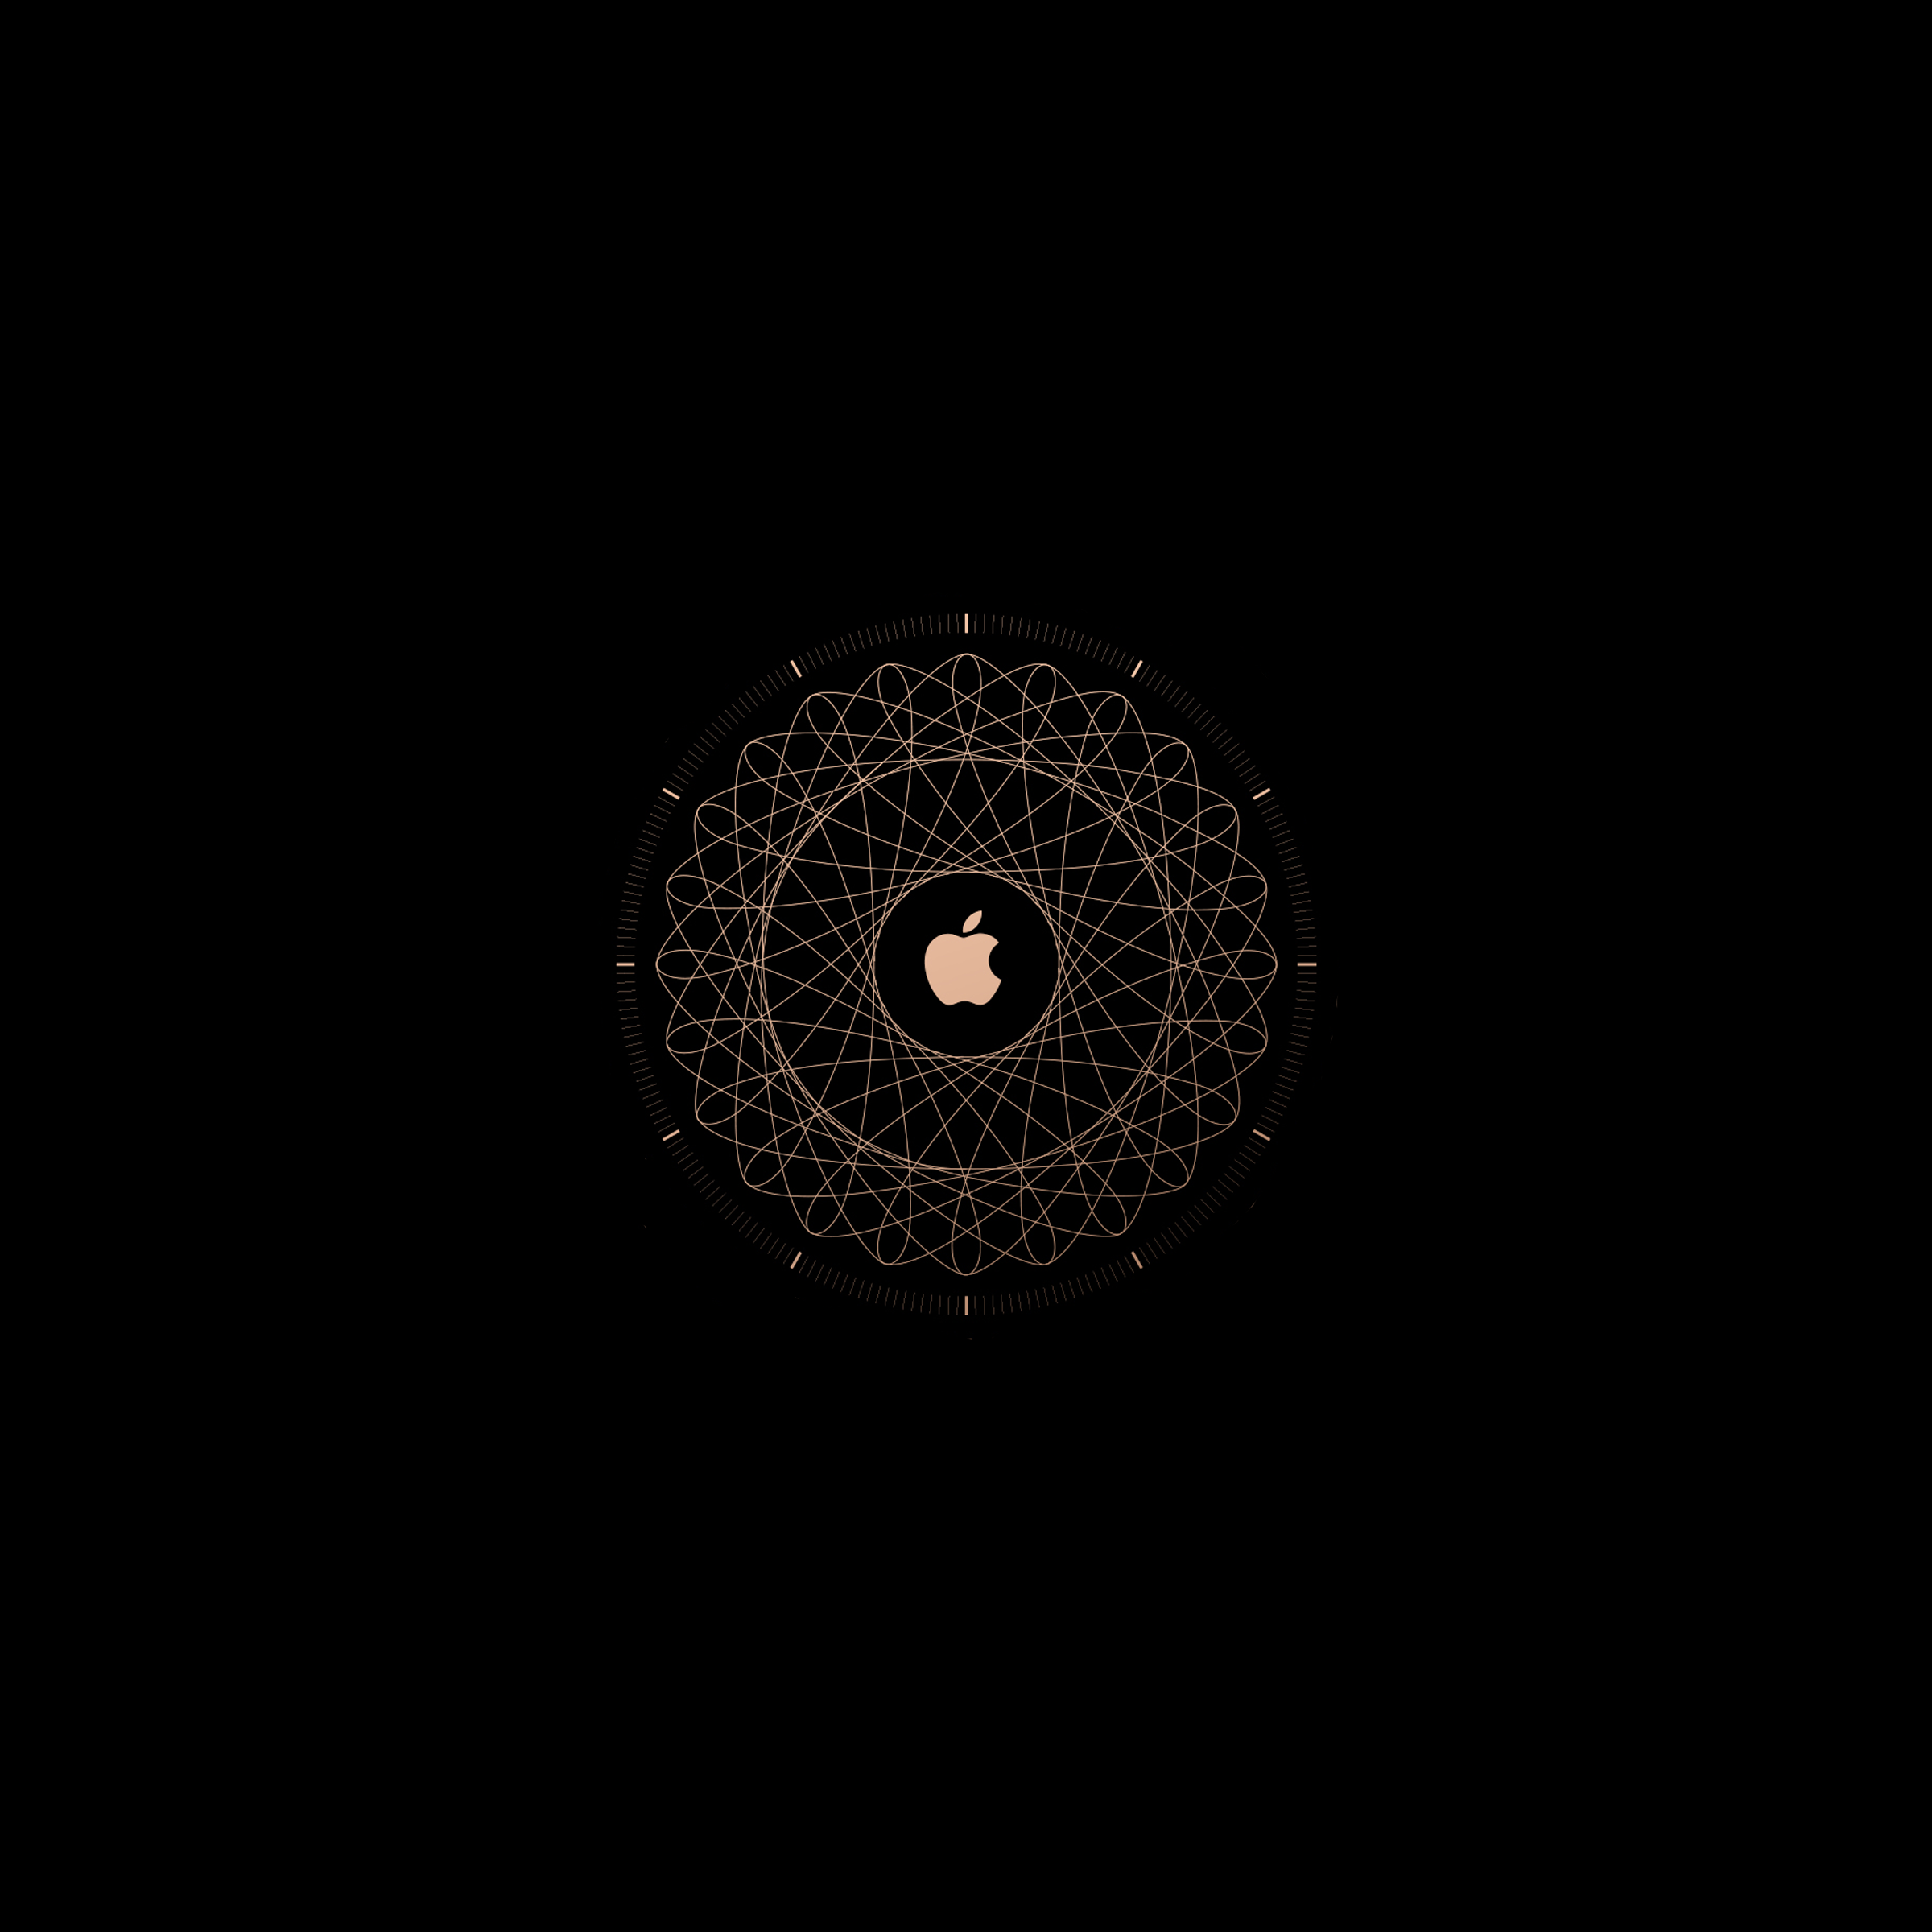 Apple Watch wallpapers for iPhone iPad and desktop 2400x2400